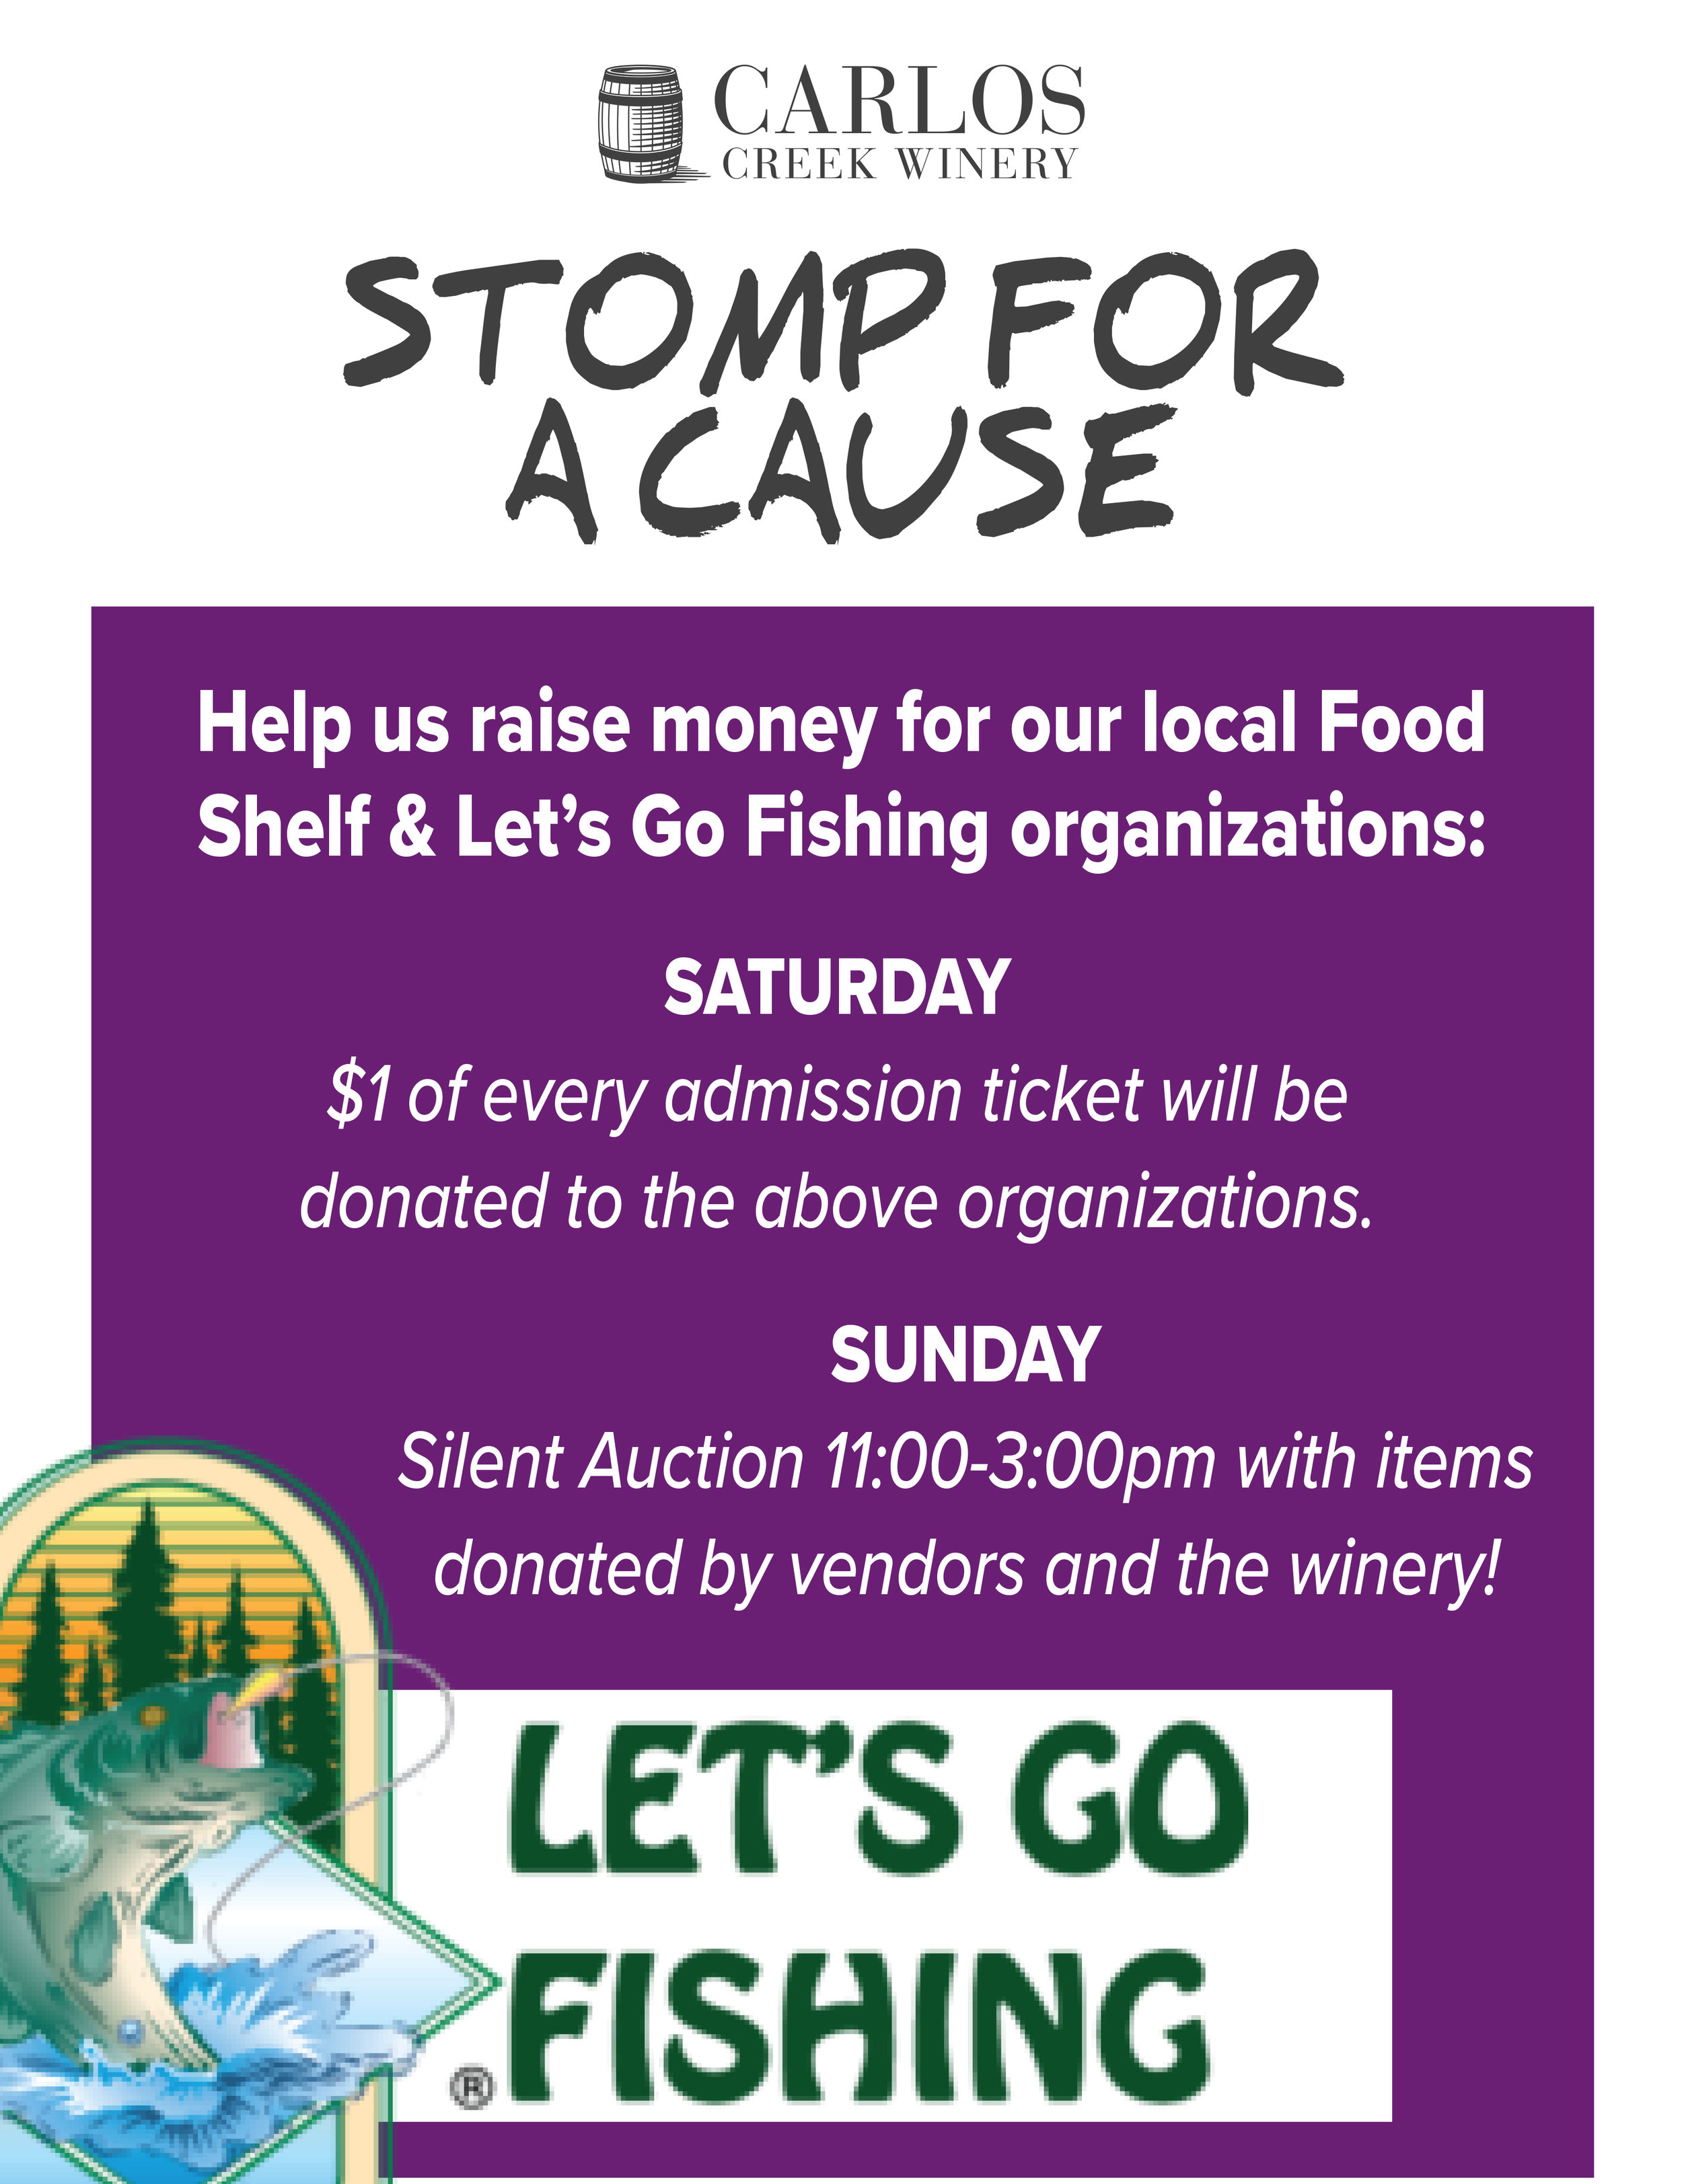 All proceeds going to support the local Food Shelf & Let's Go Fishing! located in Alexandria, MN.